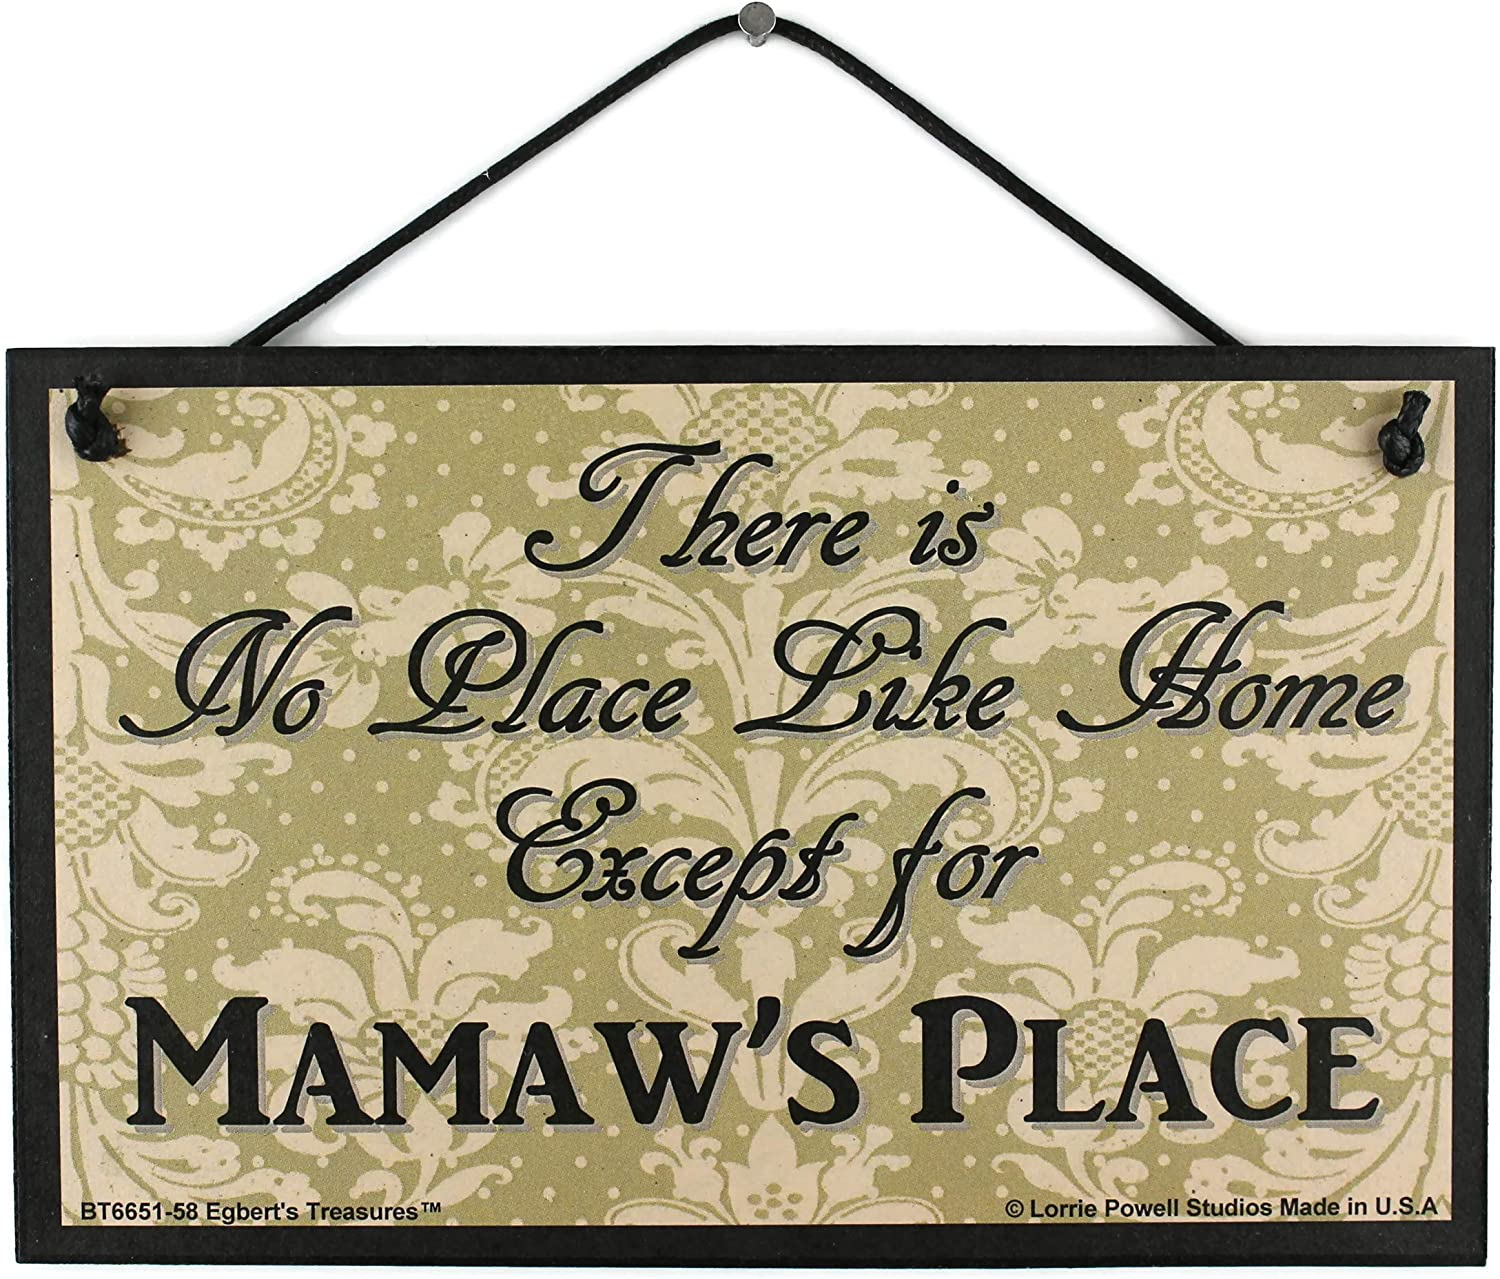 Egbert's Treasures 5x8 Black & Tan Sign Saying, There is No Place Like Home Except for Mamaw's Place Decorative Fun Universal Household Signs from